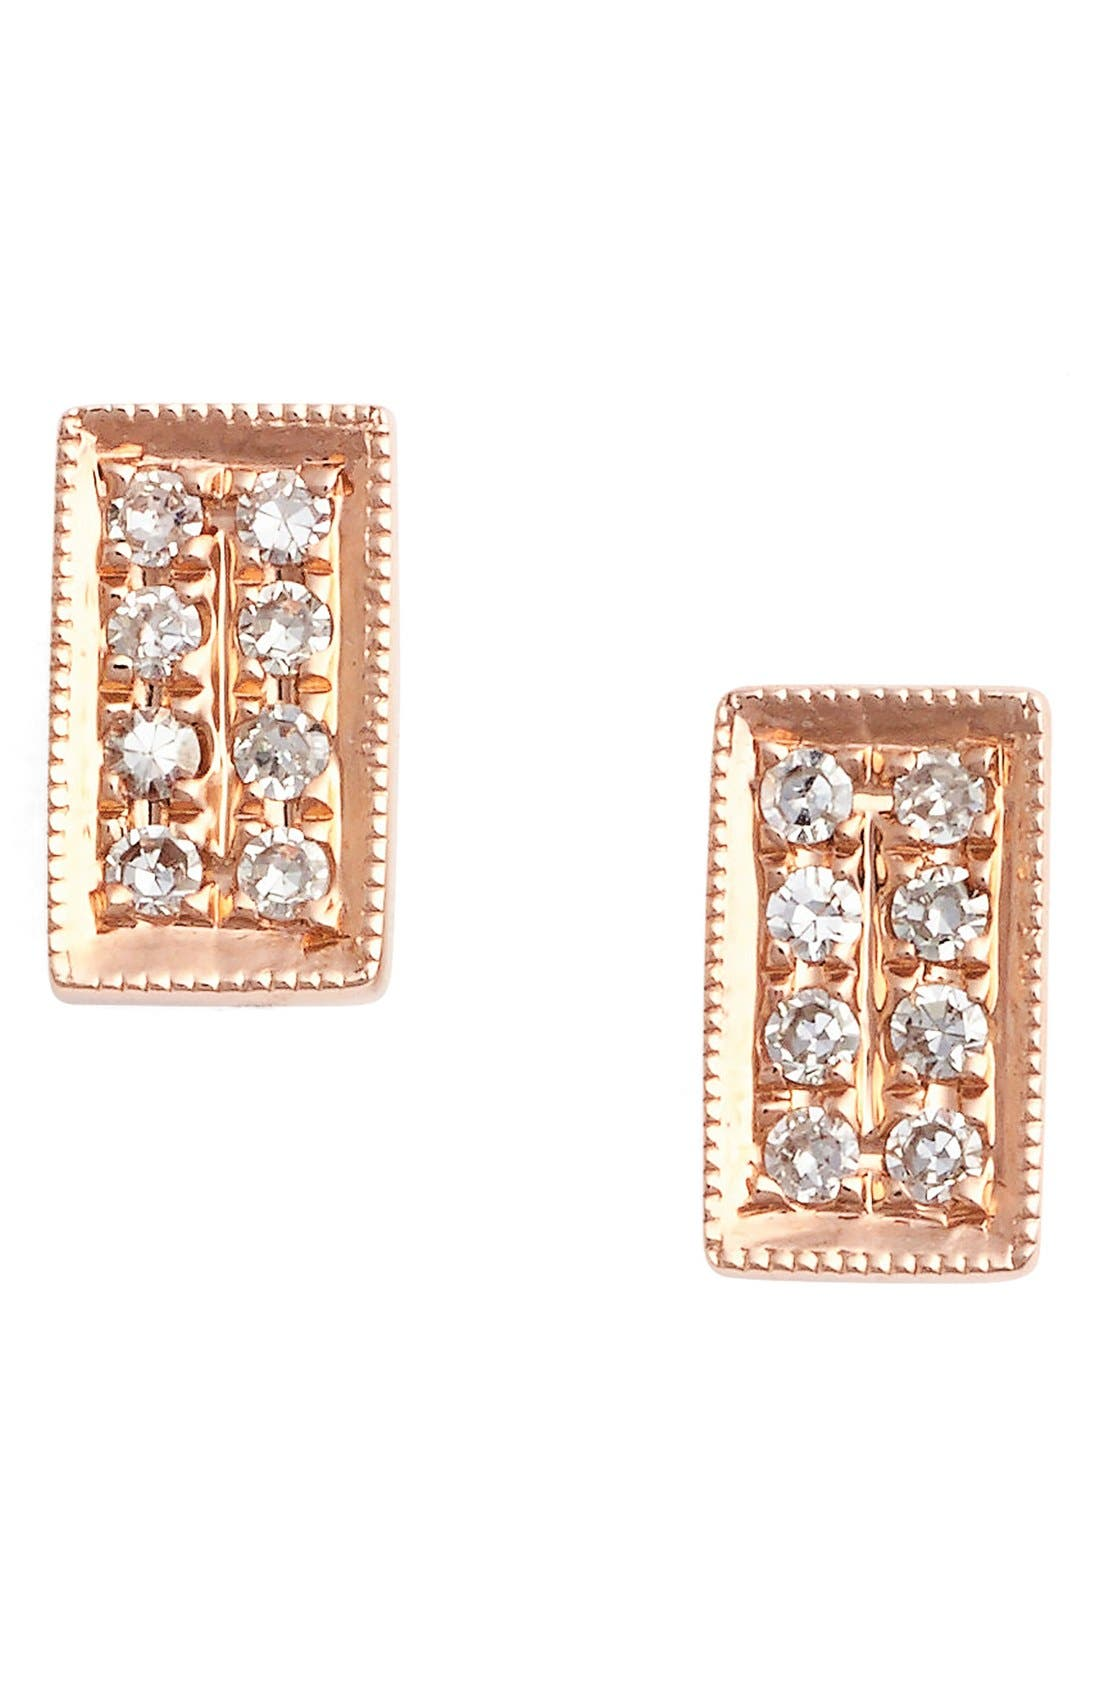 DANA REBECCA DESIGNS 'Katie' Diamond Stud Earrings